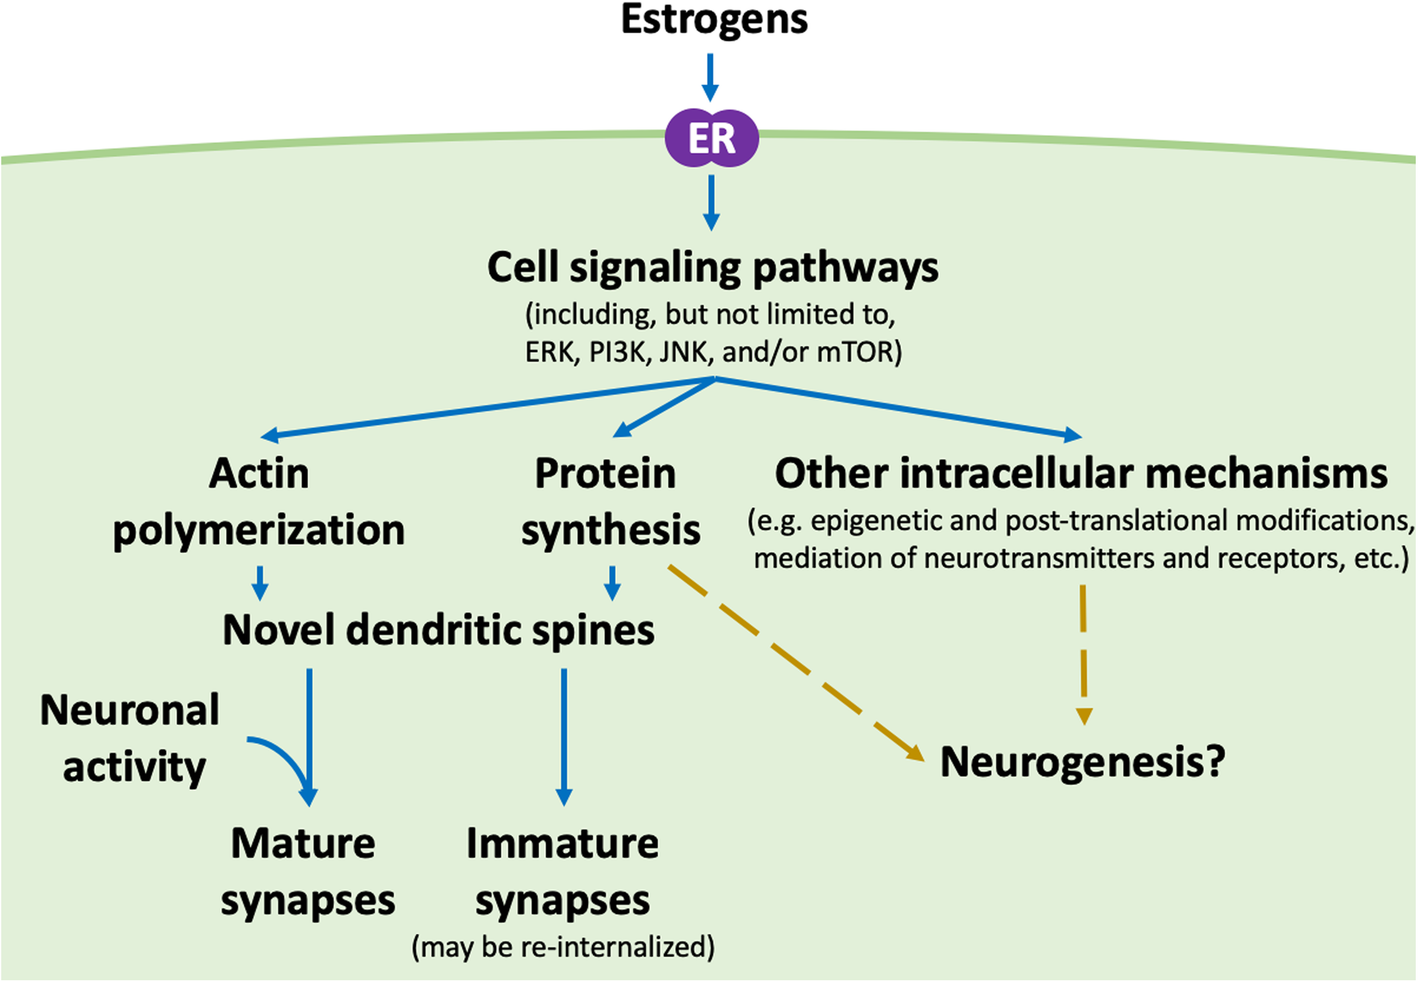 Structural plasticity of the hippocampus in response to estrogens in on